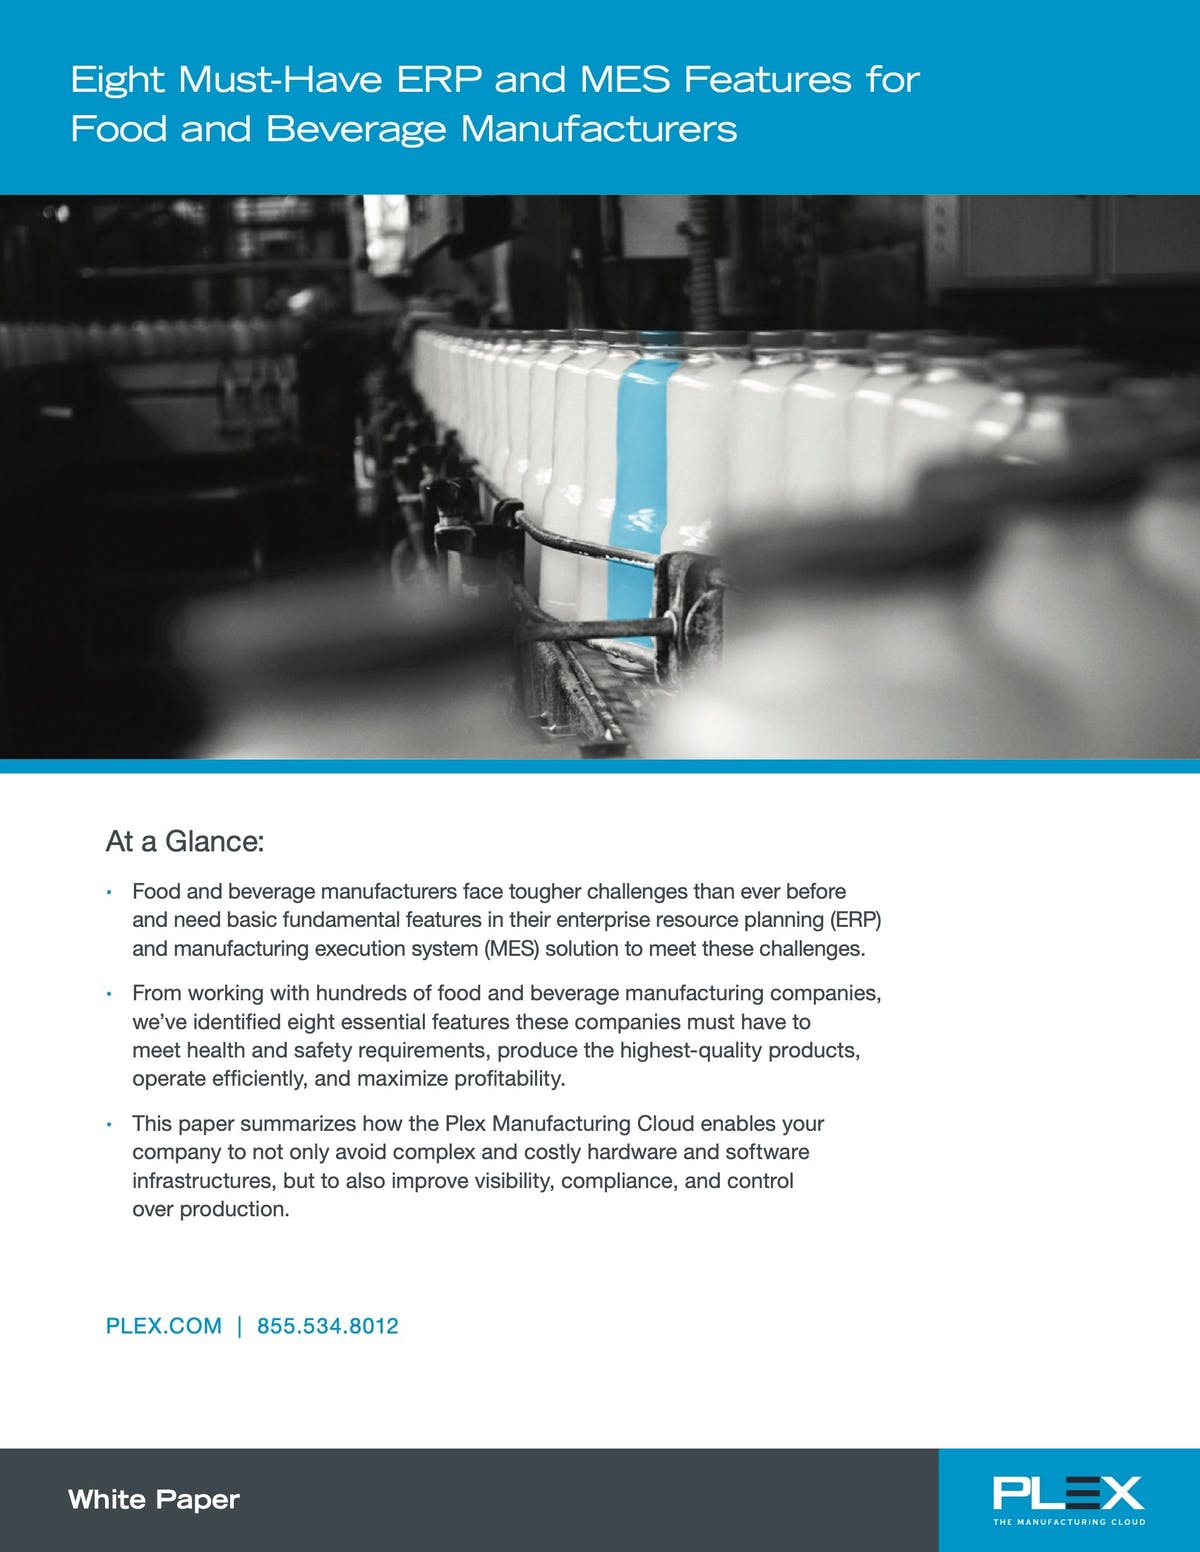 Plex Manufacturing Cloud White Paper - 8 Must-Have ERP and MES Features for Food and Beverage